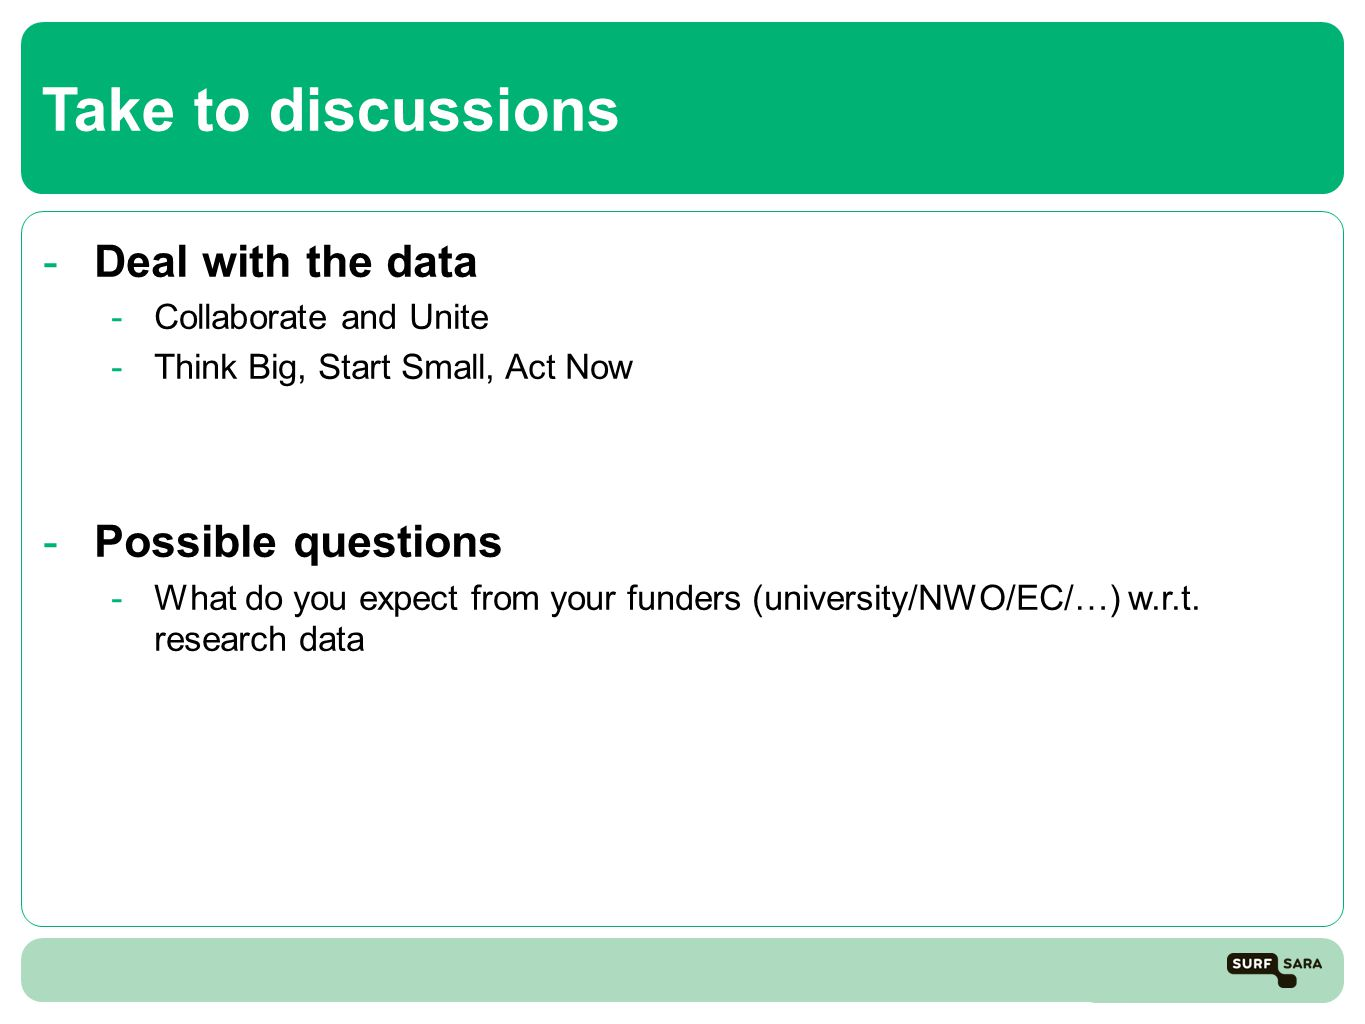 Take to discussions Deal with the data Possible questions